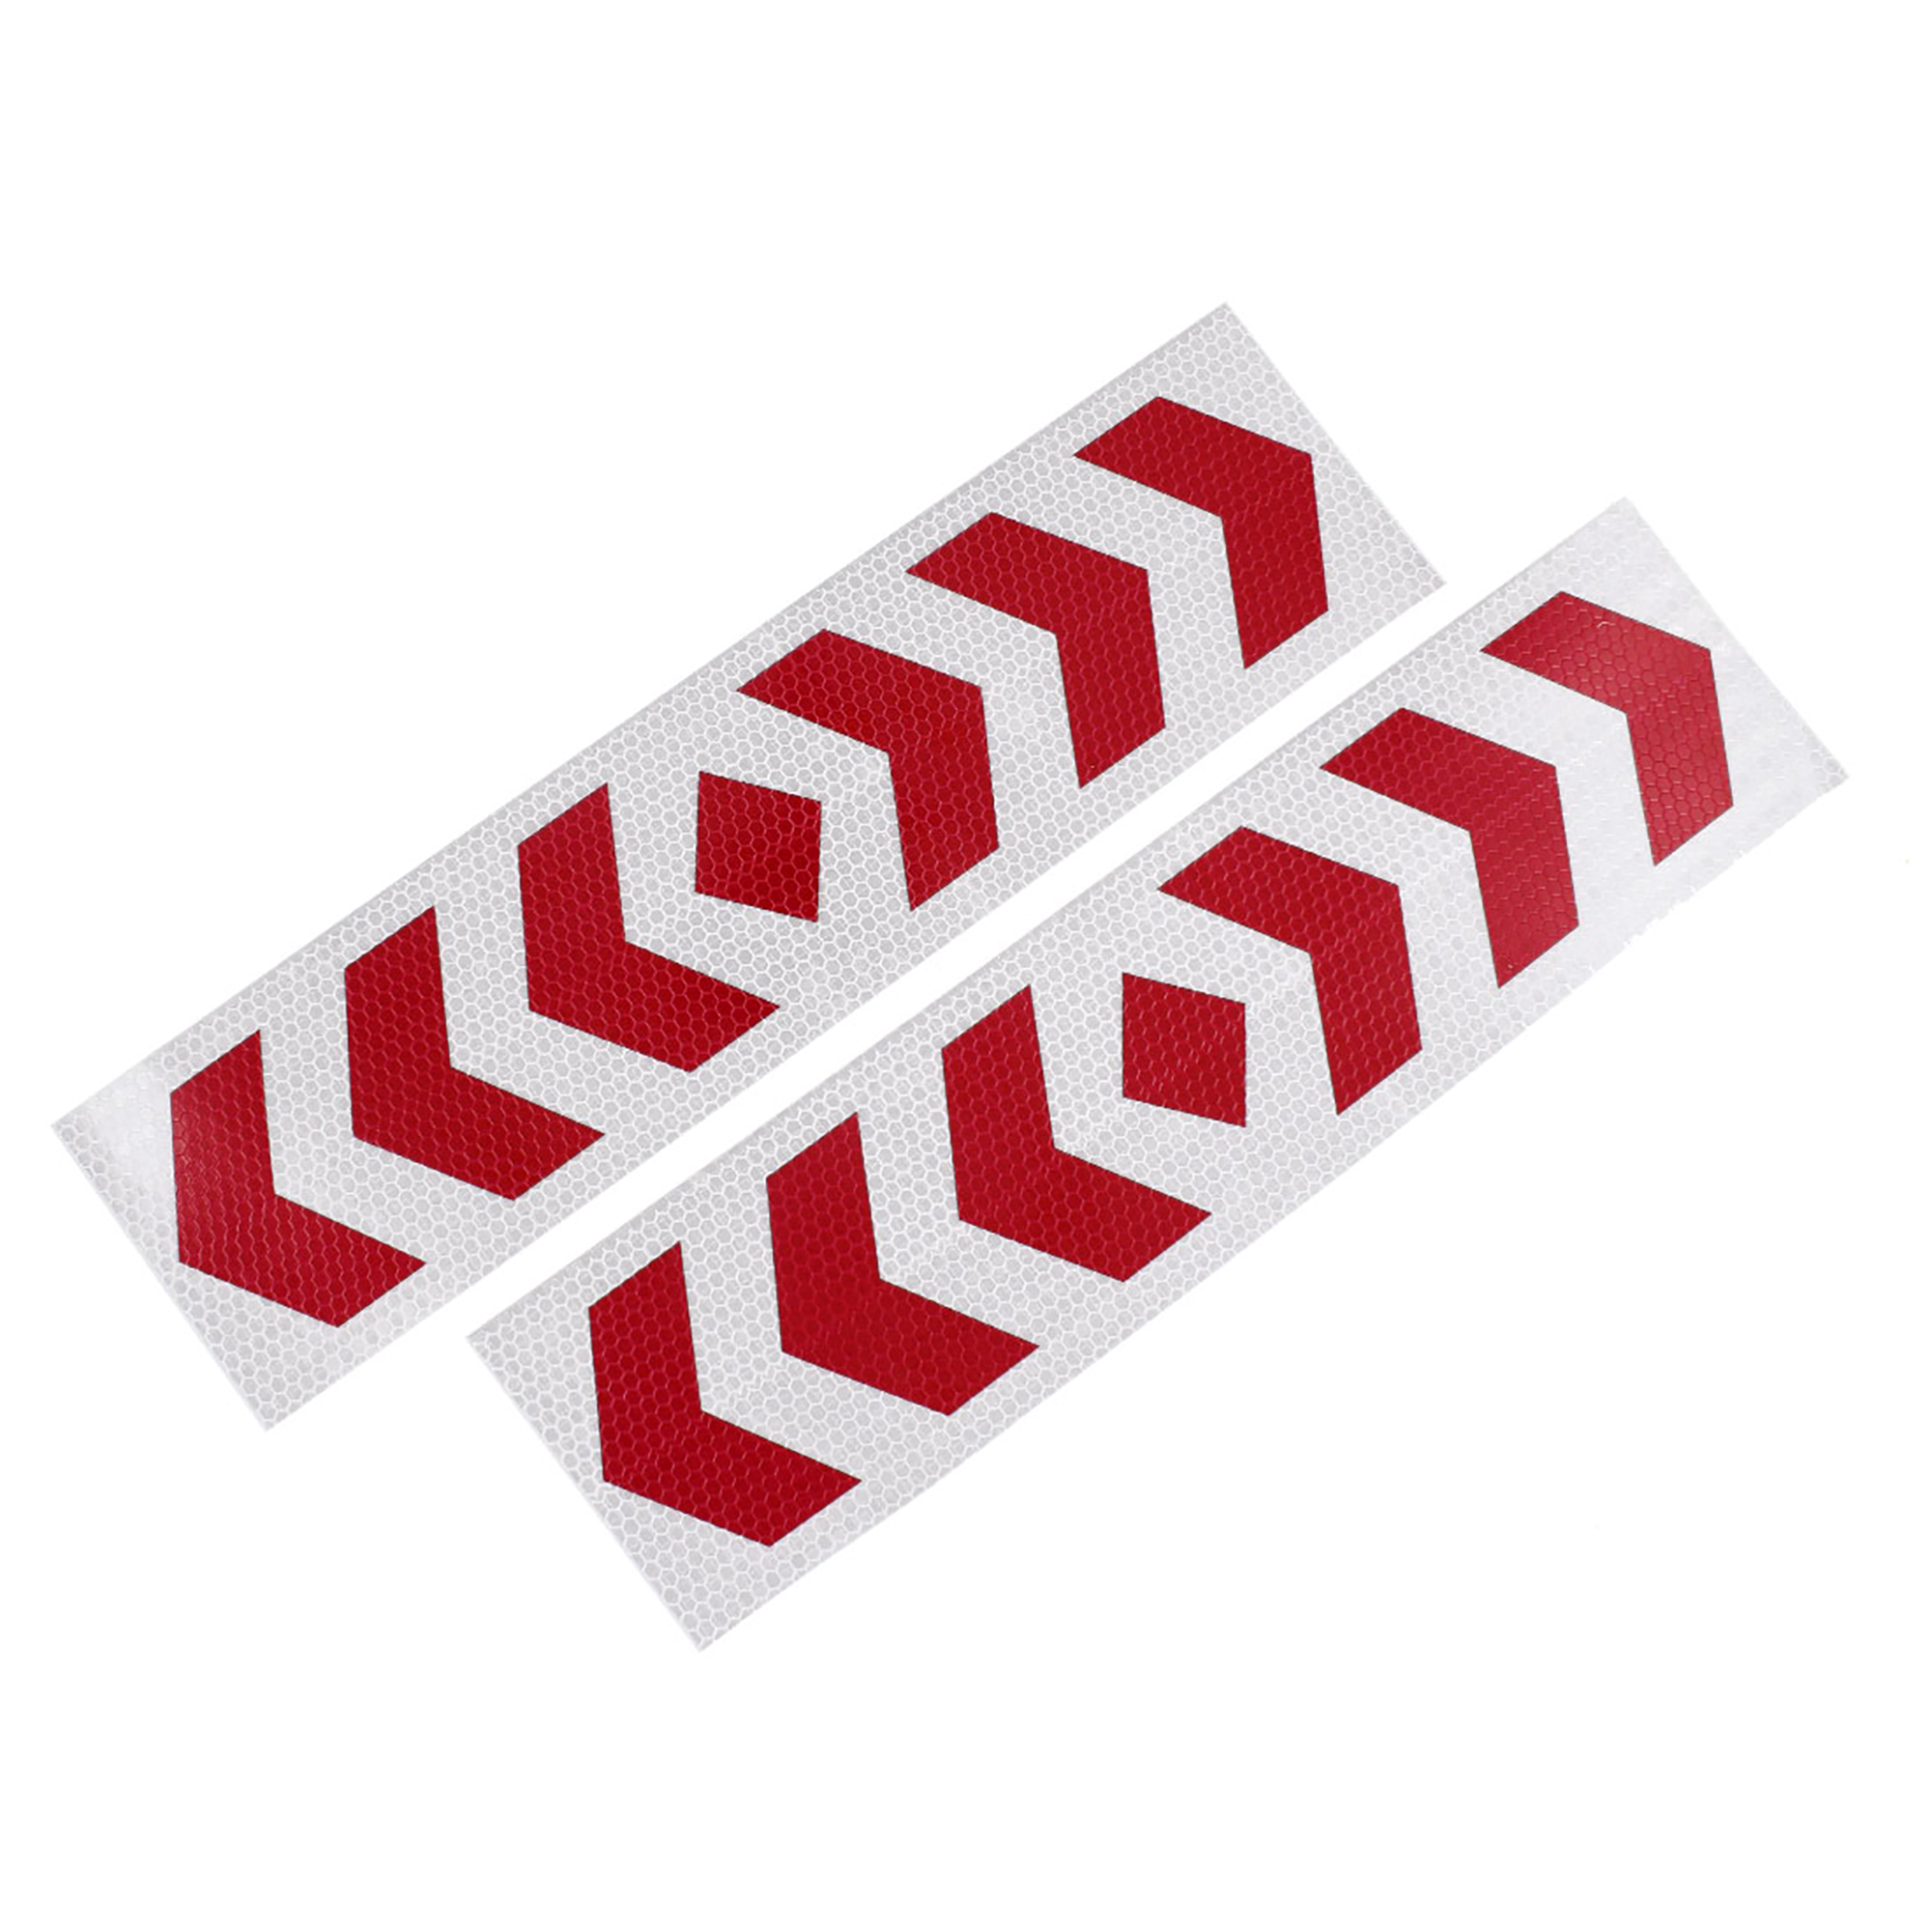 2 Pcs Plastic Arrows Printed Type Car SUV Reflective Warning Sign Sticker Tape Red White